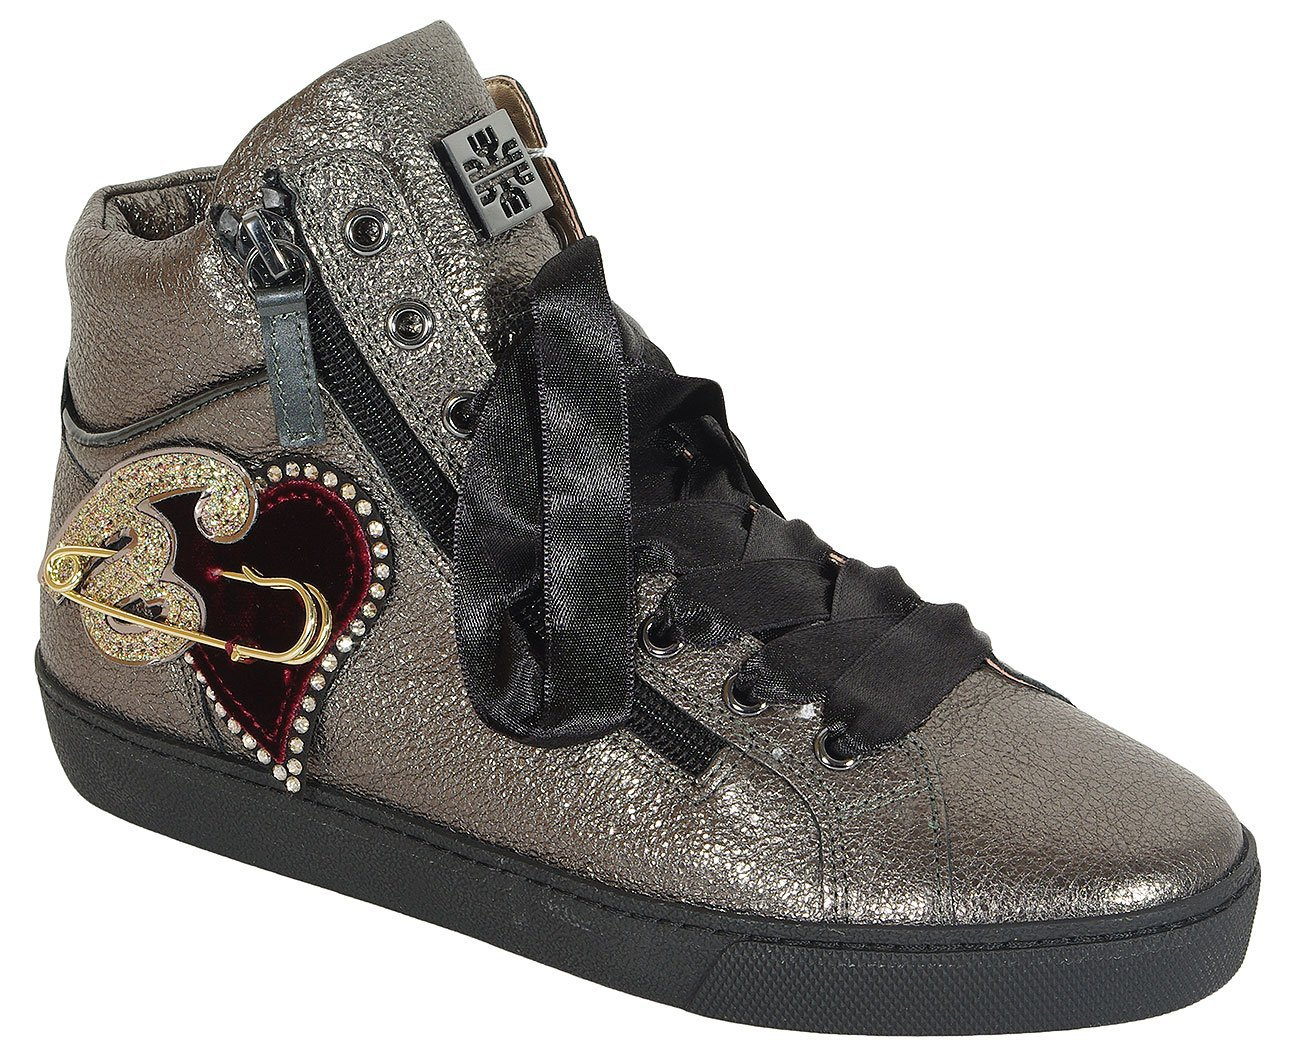 Hogl 0361 sneakers crackskin antracit